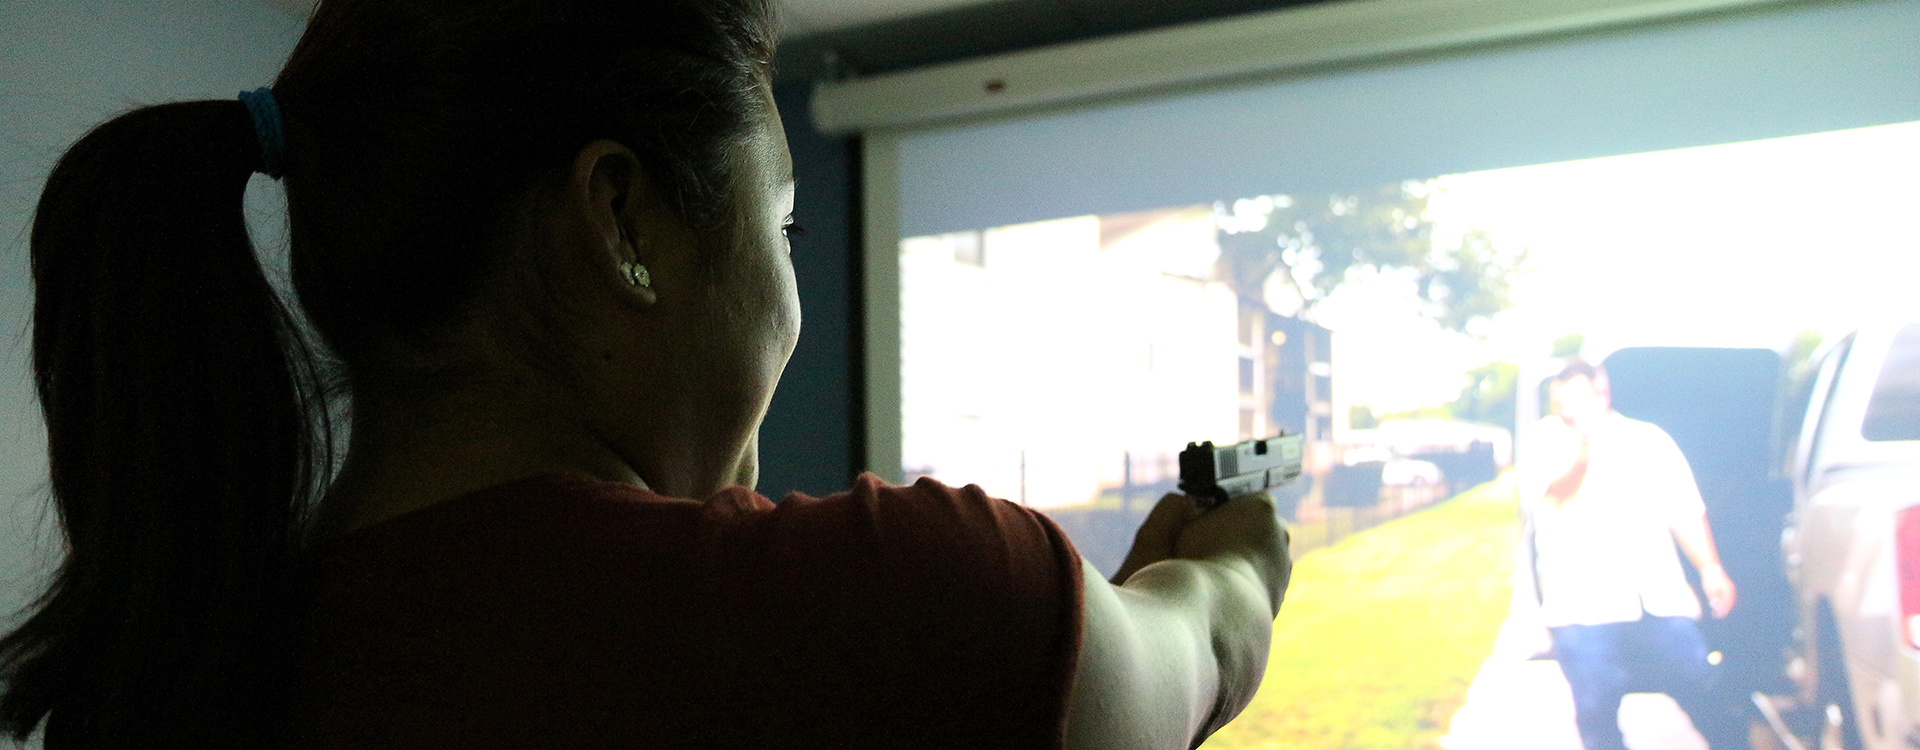 student participating in a shooting simulator